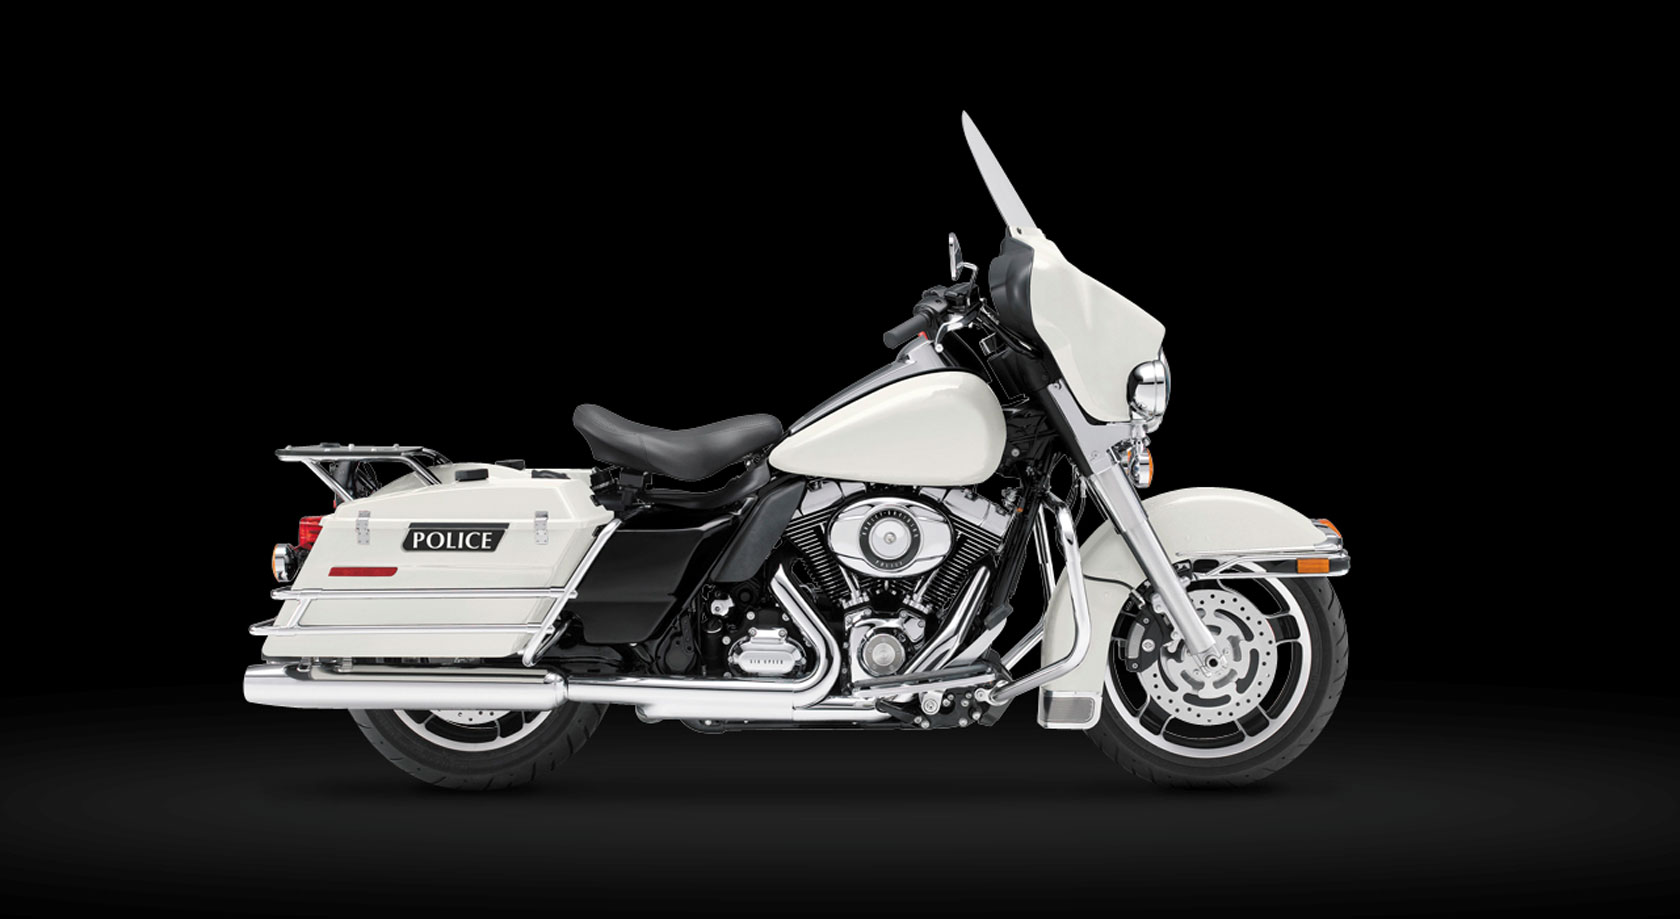 Harley Davidson Police Wallpapers Vehicles Hq Harley Davidson Police Pictures 4k Wallpapers 2019